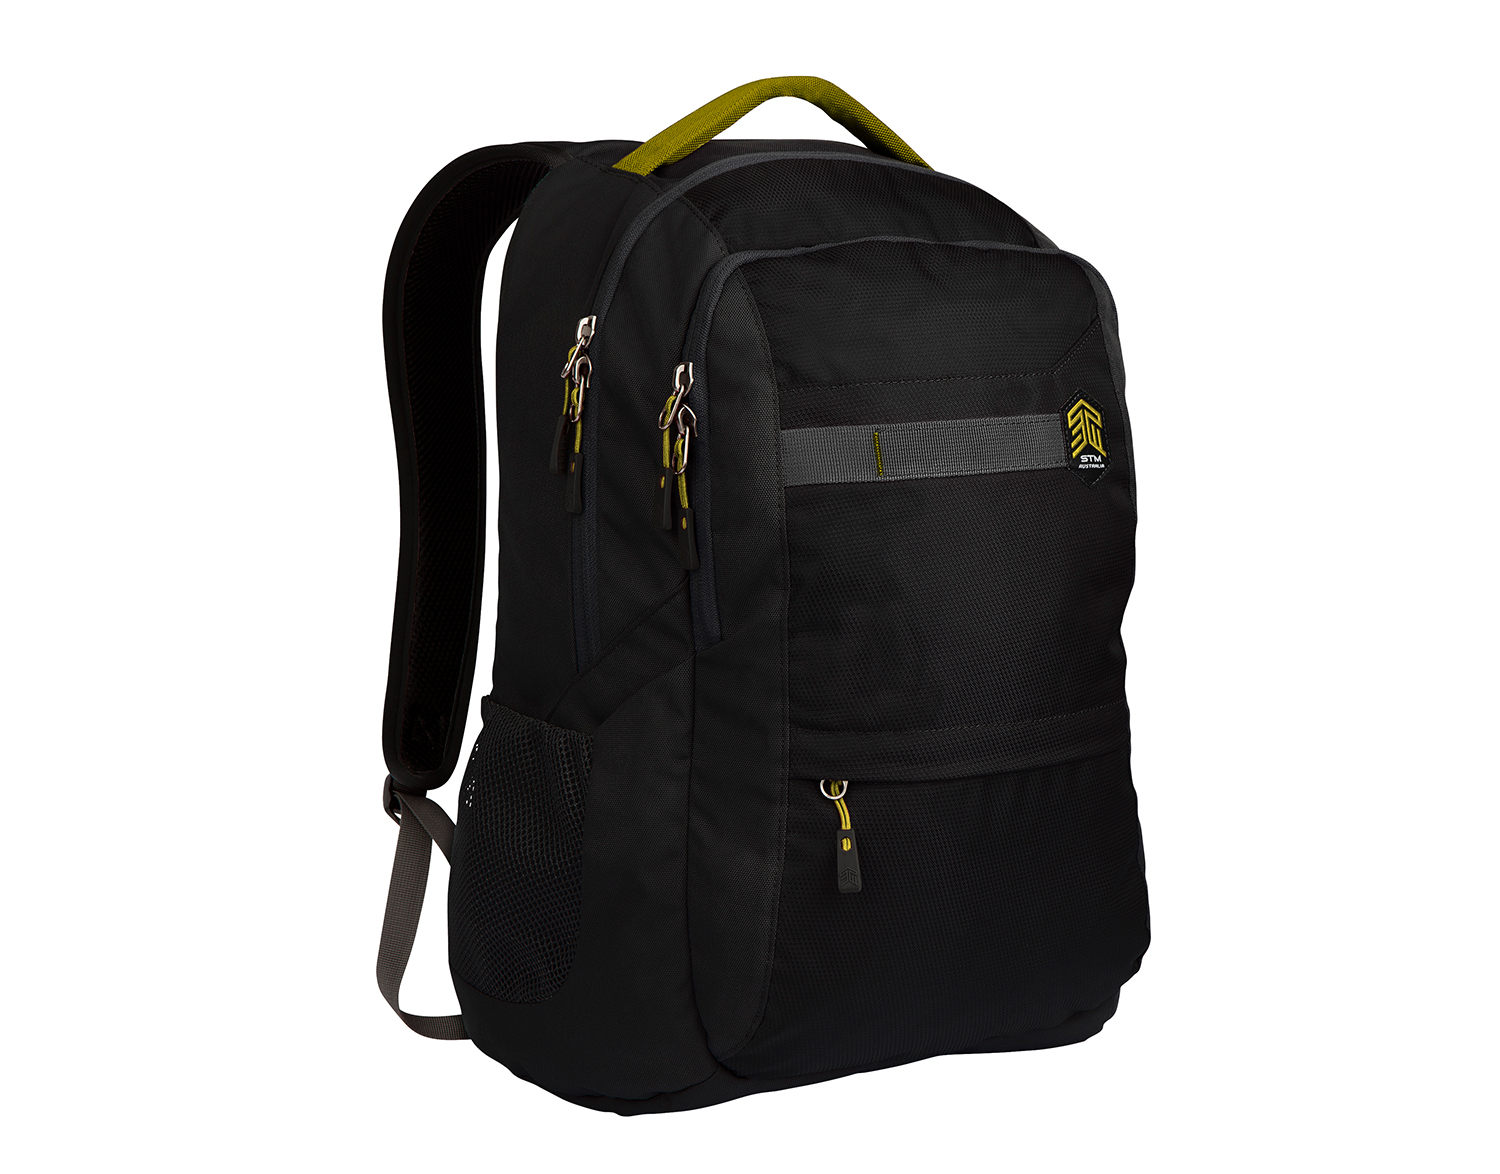 STM Trilogy Backpack 15 inch